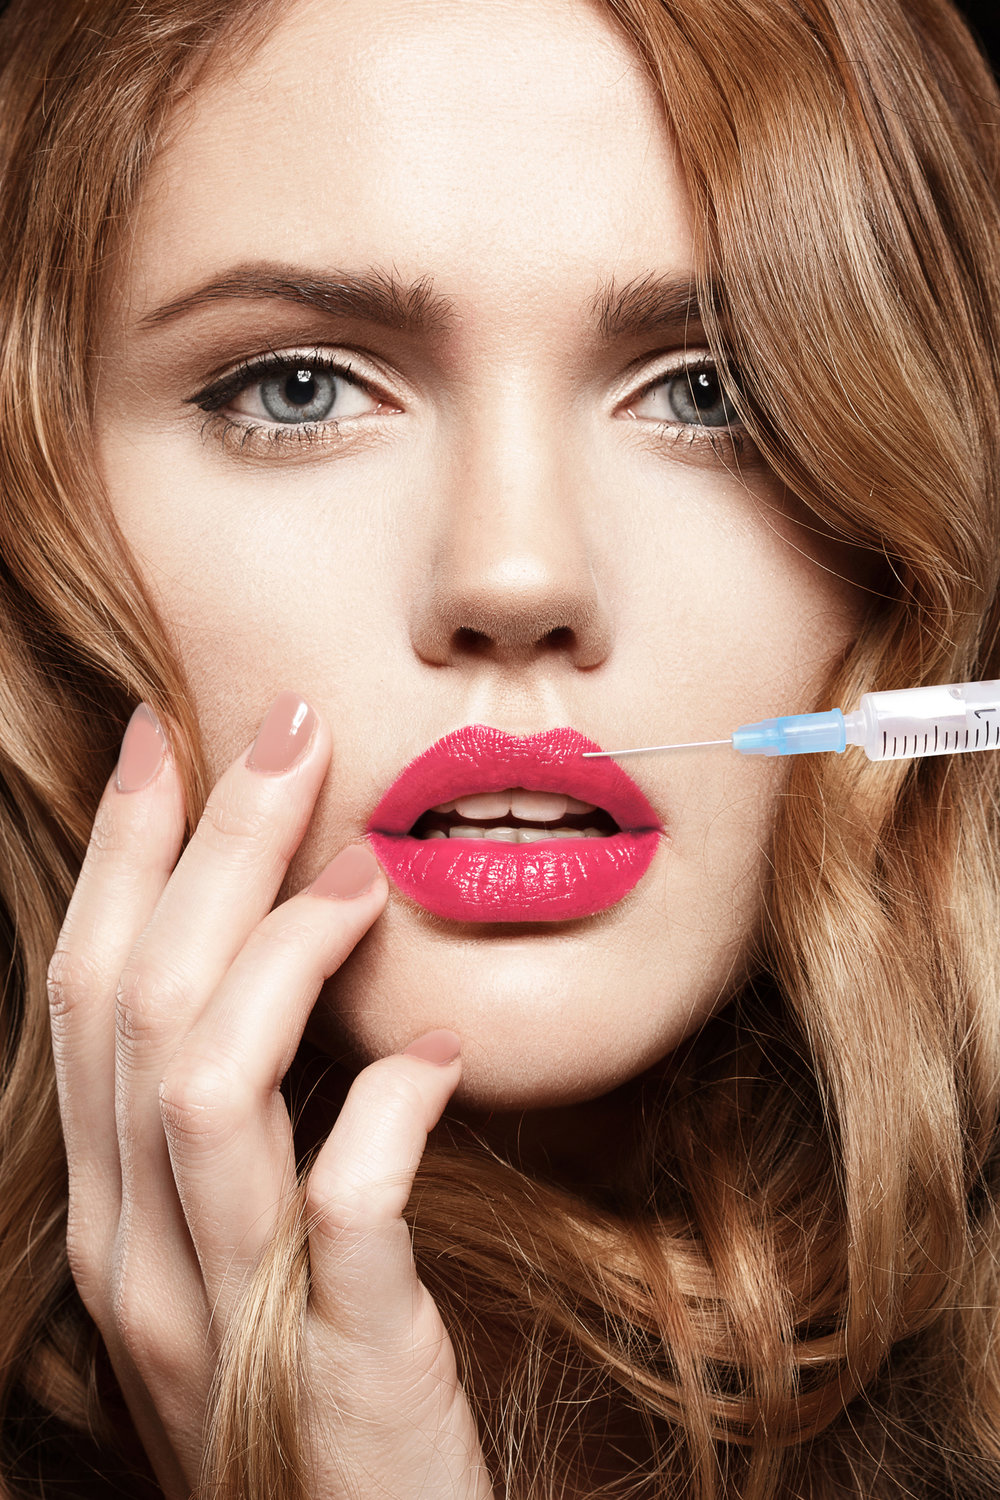 Lip Fillers - Lipaddict is also a great product to compliment lip injections/ lip fillers. The product will enhance and maintain the effects of the procedure, leaving your customers loving their lips even more!The product can be applied immediately after the procedure. Doctors are finishing off lip injections procedure with Lipaddict!Click here to carry Lipaddict in your practice!